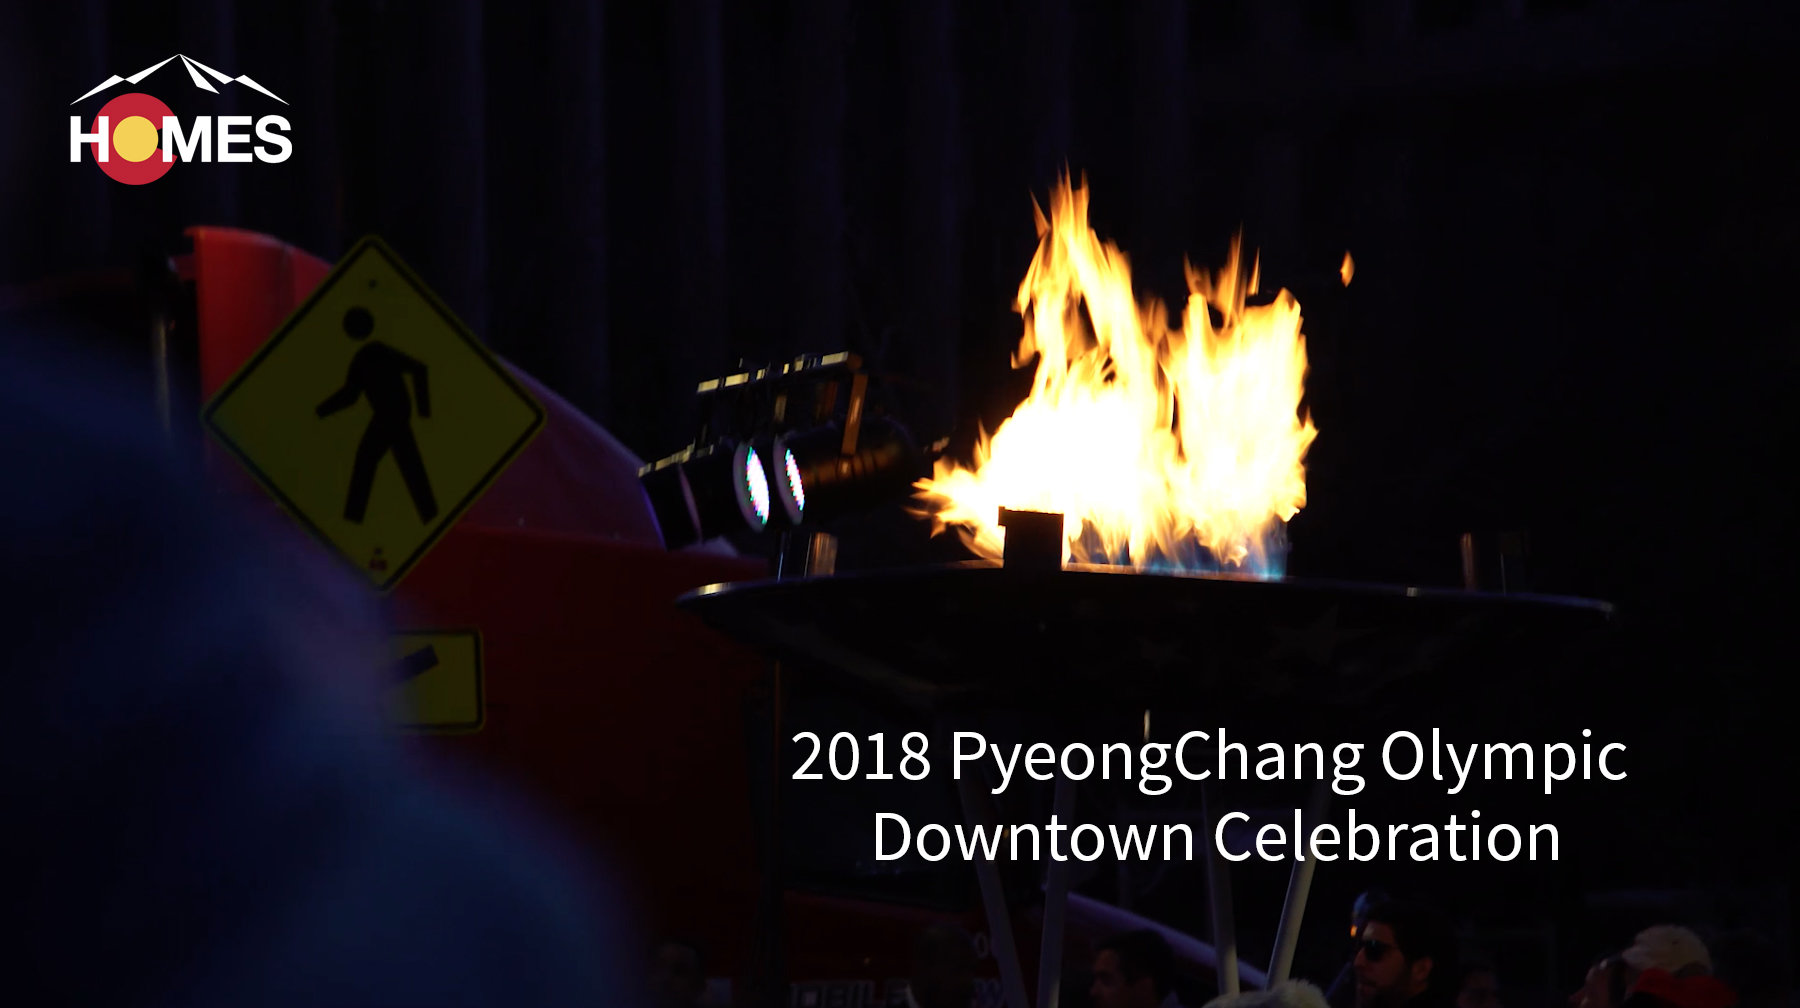 Colorado Springs | 2018 PyeongChang Olympic Downtown Celebration